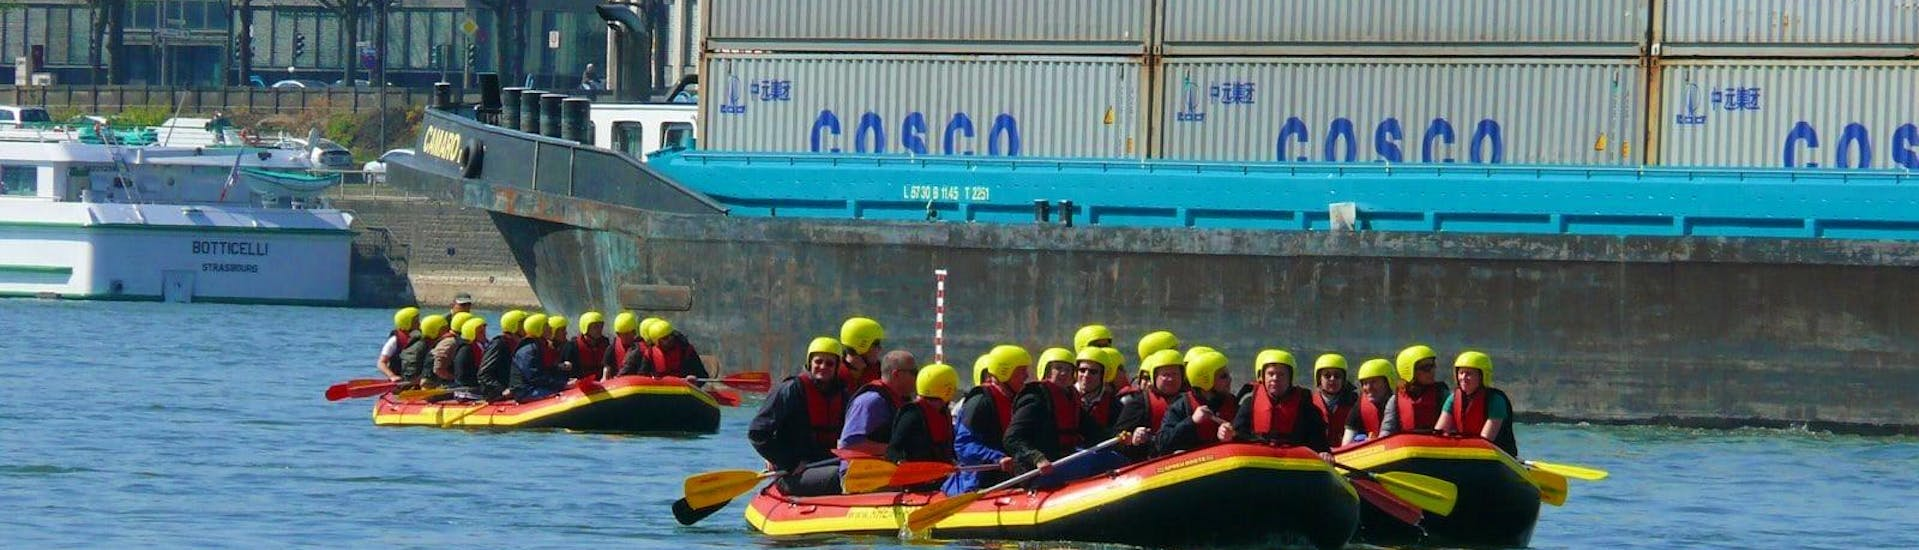 soft-rafting-on-the-rhine-in-colonia-for-groups-wupperkanu-hero